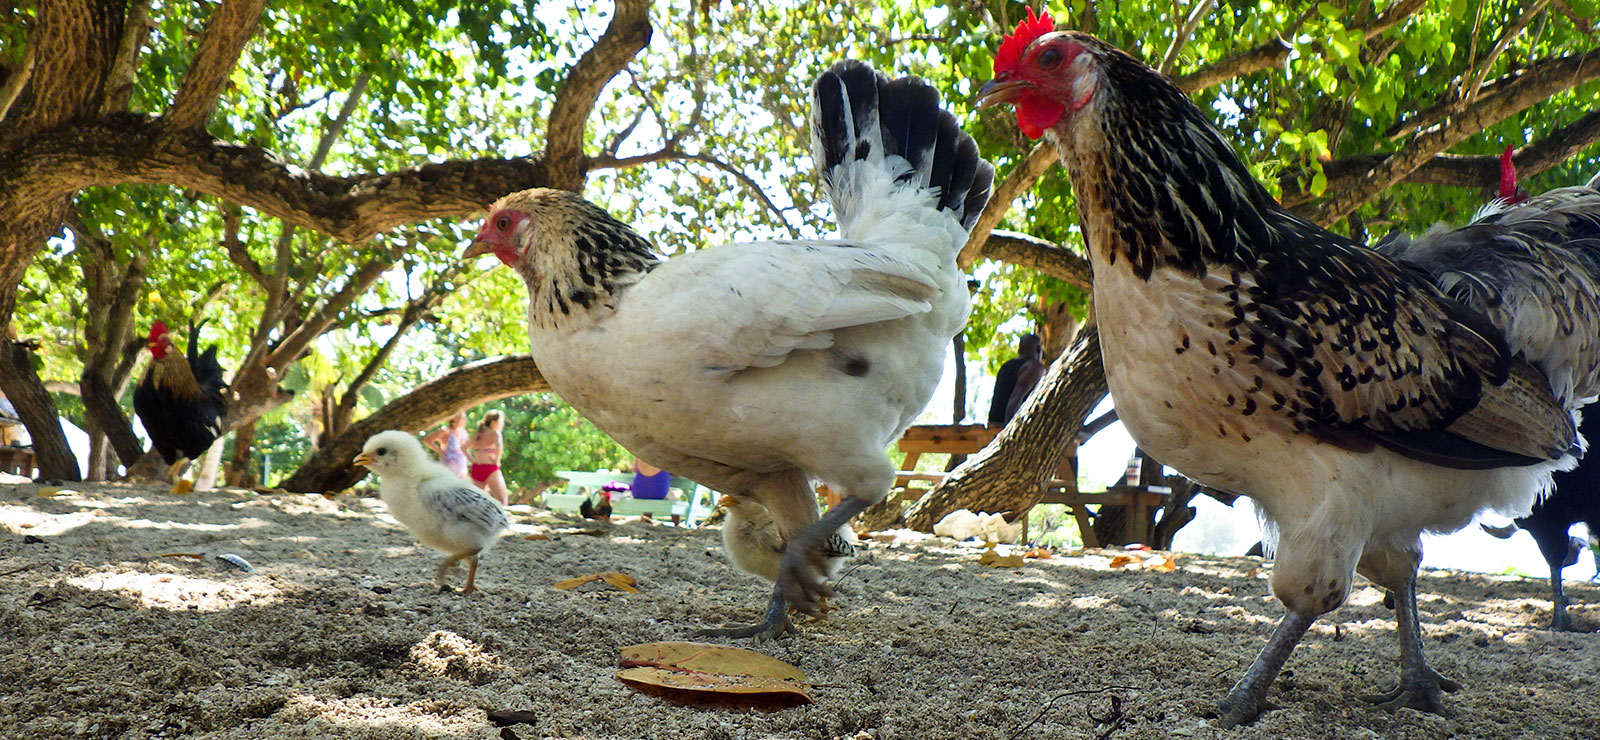 chick, hen and rooster walking side by side